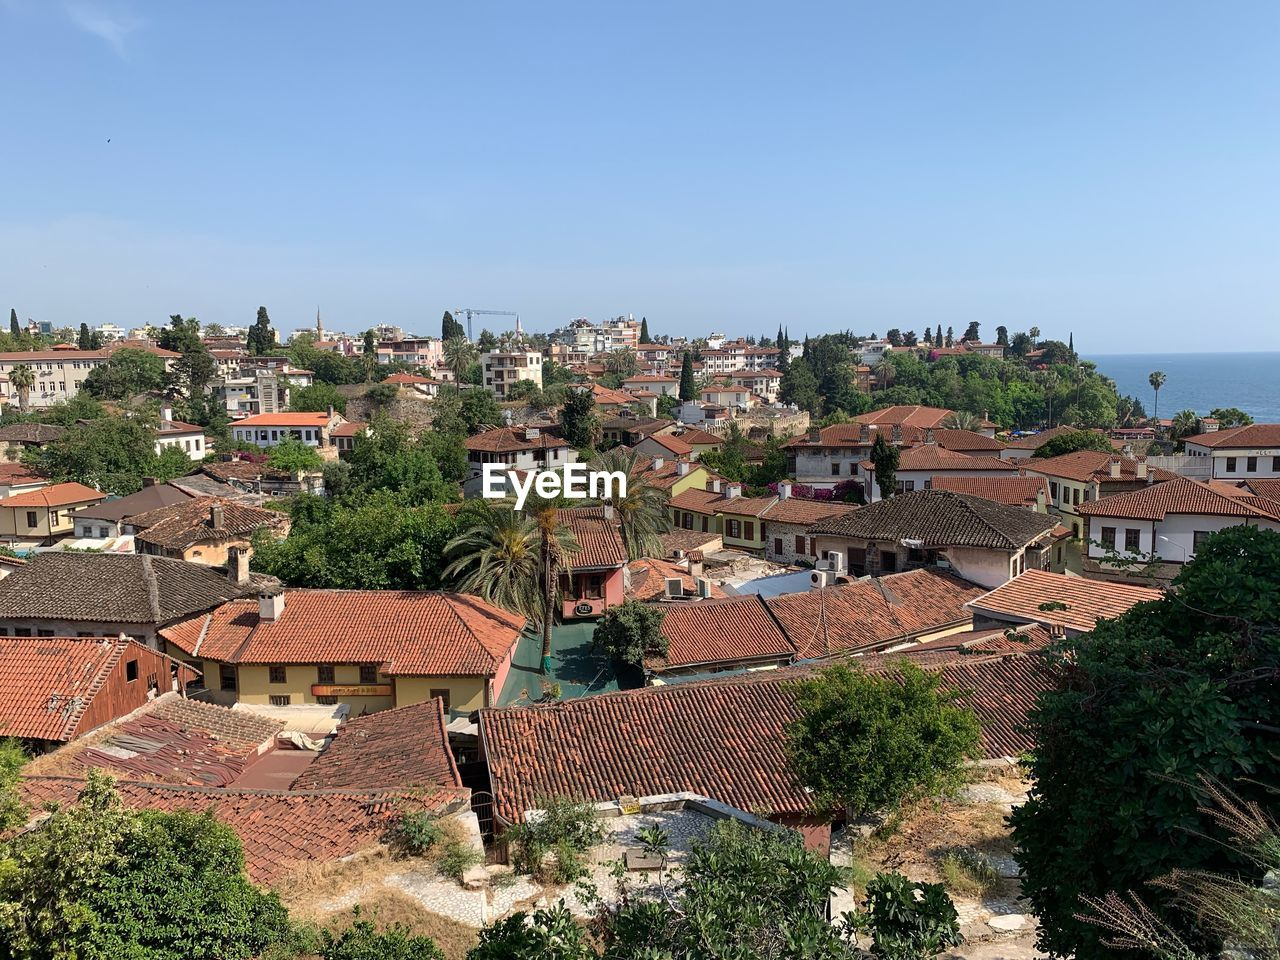 architecture, building exterior, built structure, building, residential district, city, roof, high angle view, tree, house, plant, nature, day, town, community, no people, sky, outdoors, cityscape, townscape, roof tile